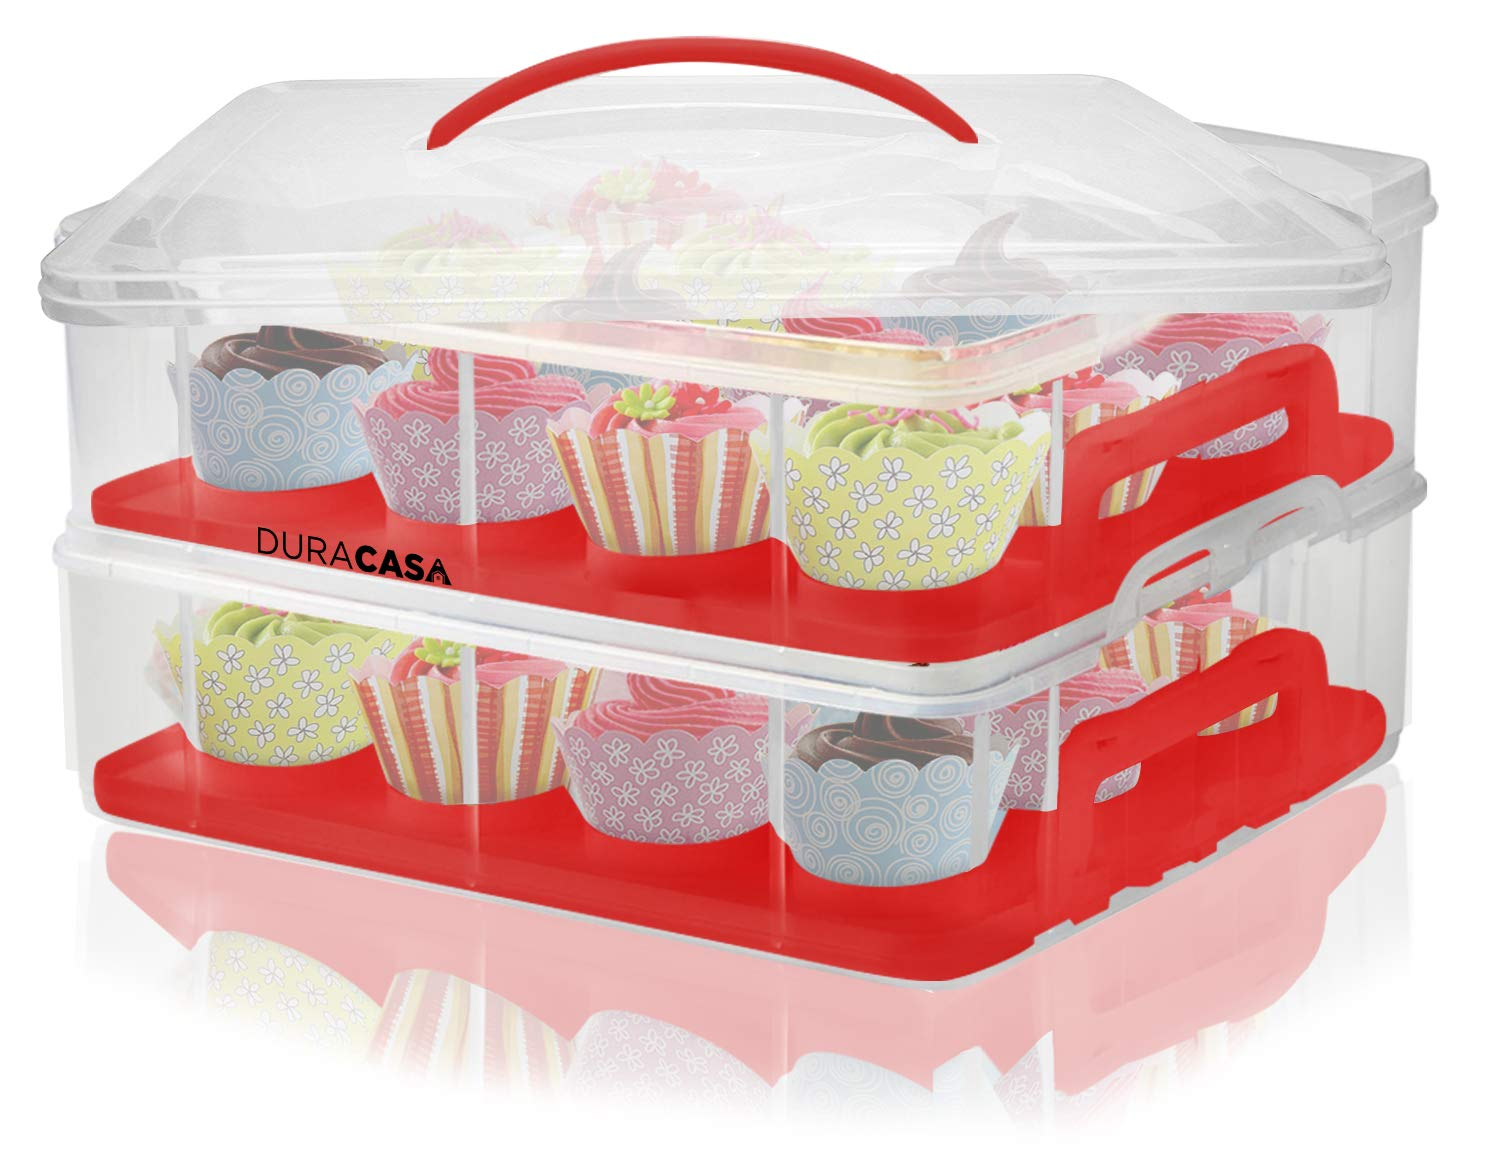 DuraCasa Cupcake Carrier | Cupcake Holder | Store up to 24 Cupcakes or 2 Large Cakes | Stacking Cupcake Storage Container | Cupcake, Cookie, or Cake Dessert Carrier (White) DCWH-BL-PK-RD24